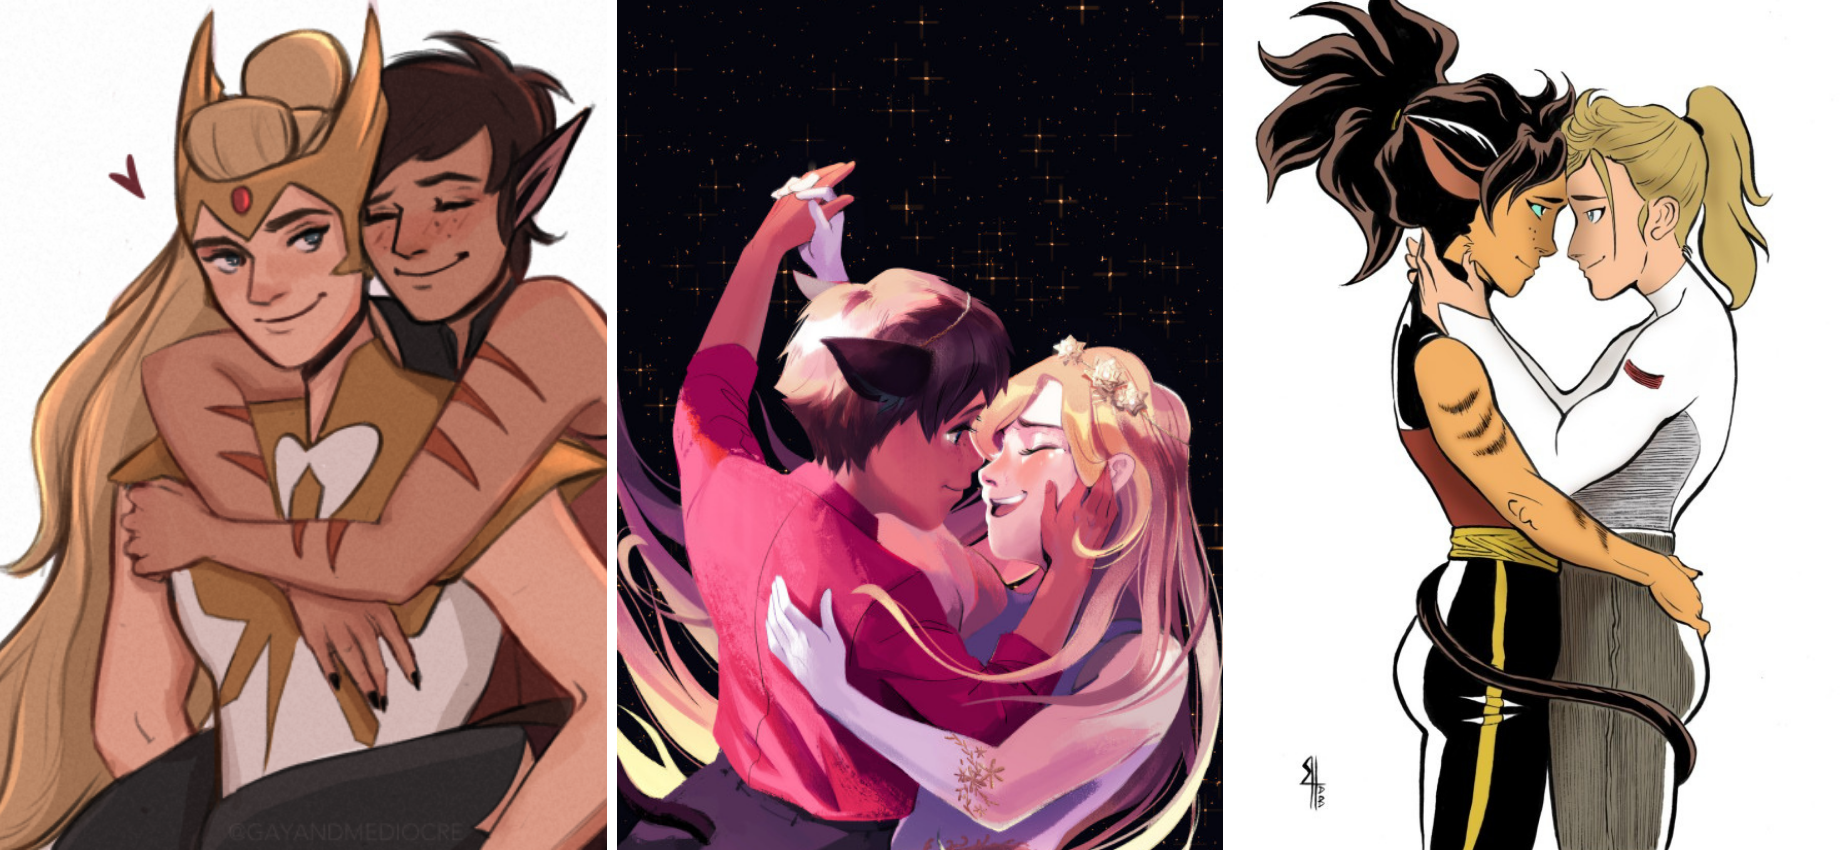 'She-Ra and the Princesses of Power': 26 #Catradora Fanart Pieces That Made Us Swoon